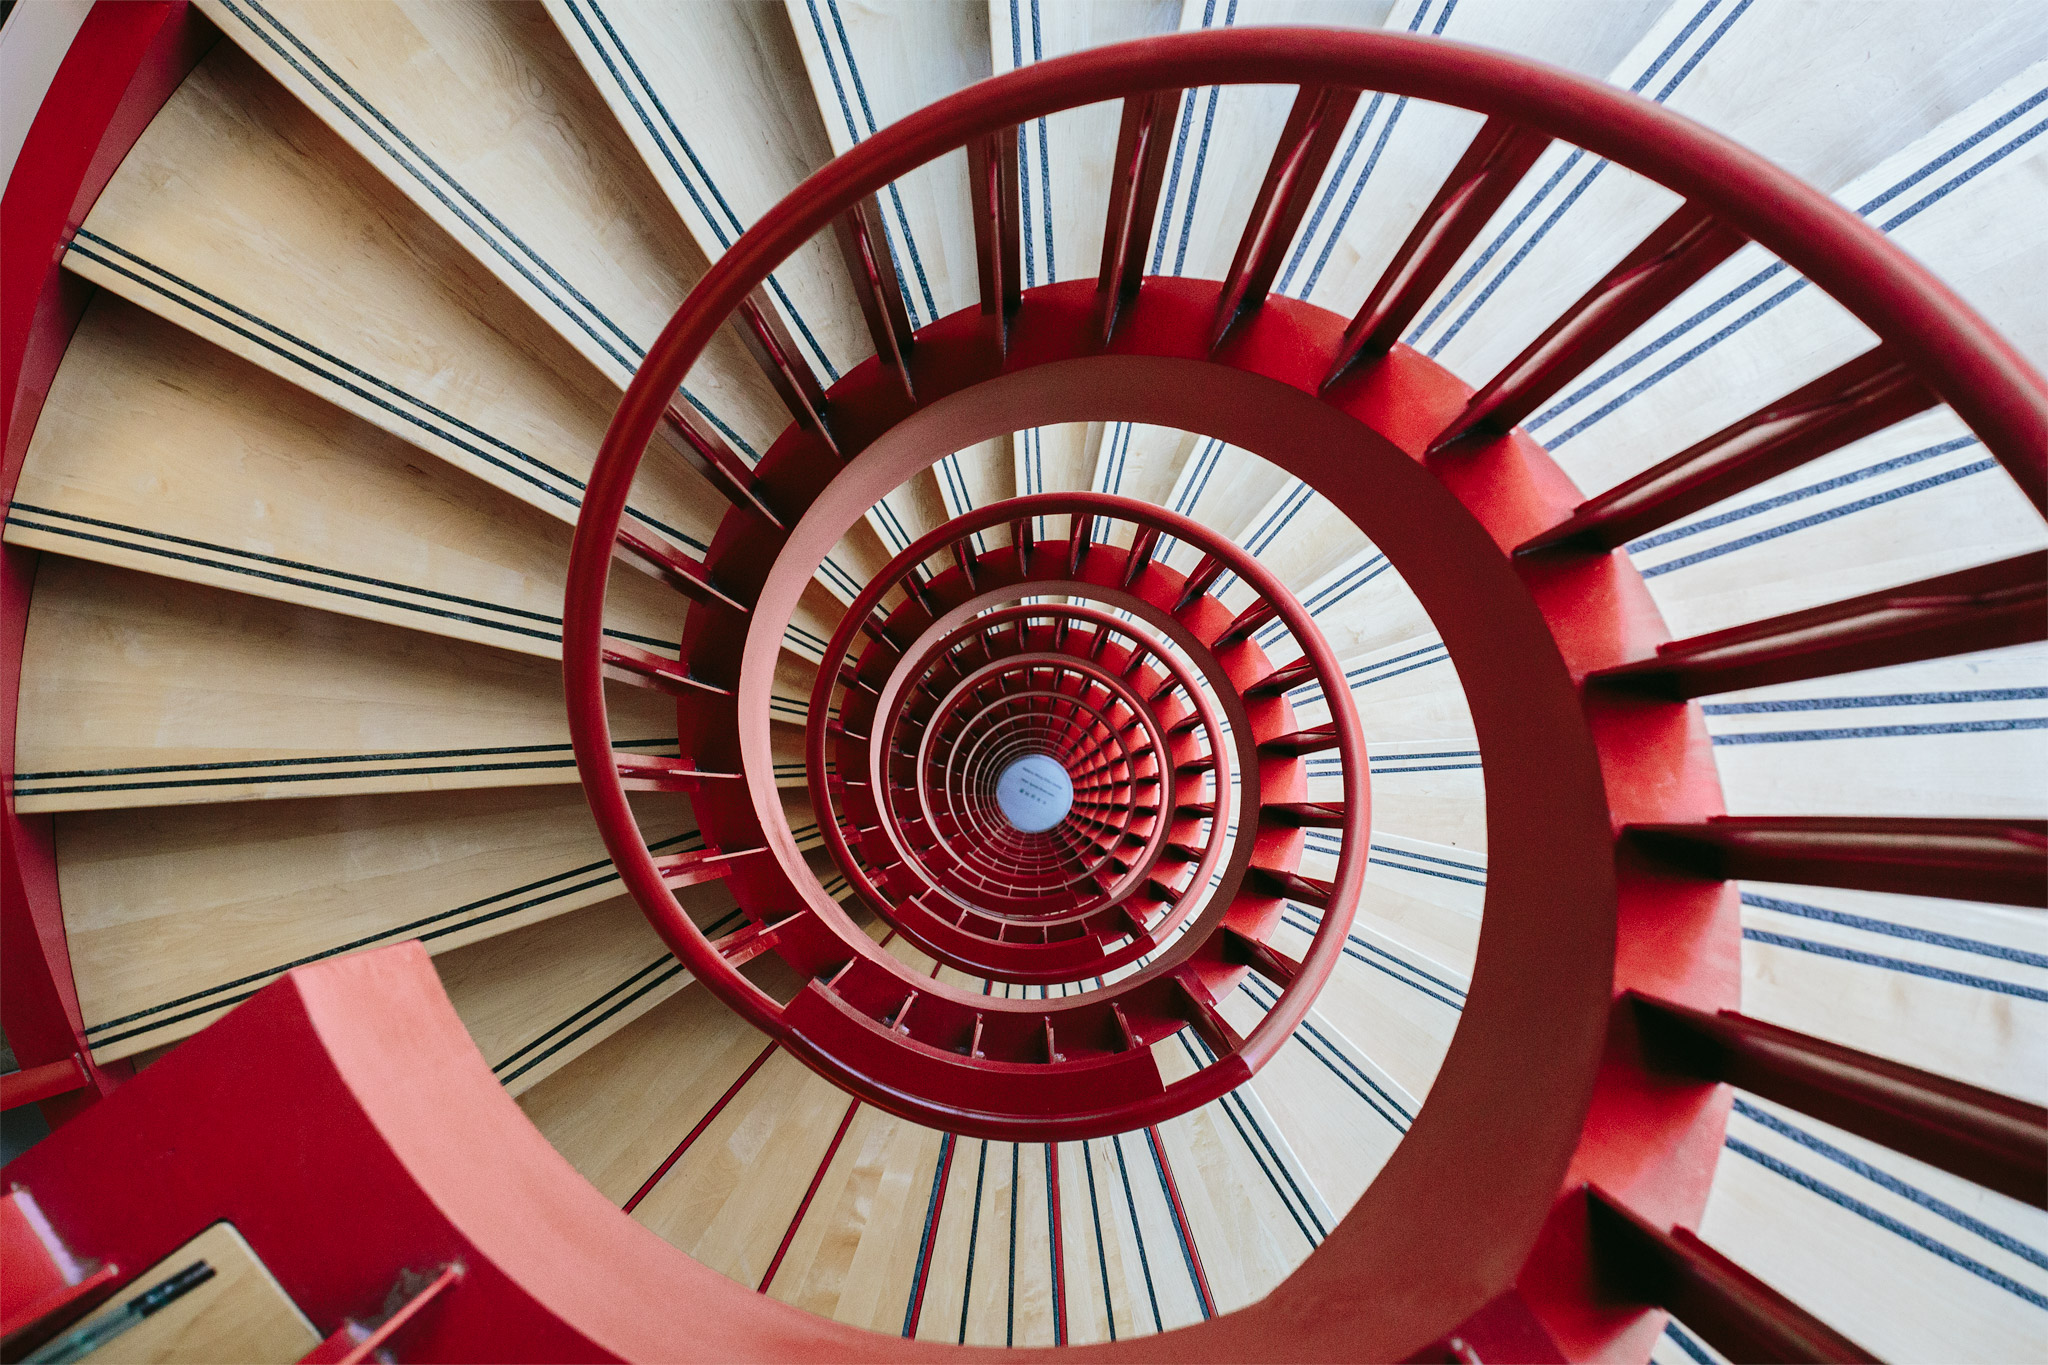 DNA Spiral Staircase located at BC Cancer Agency Research, Vancouver, B.C.